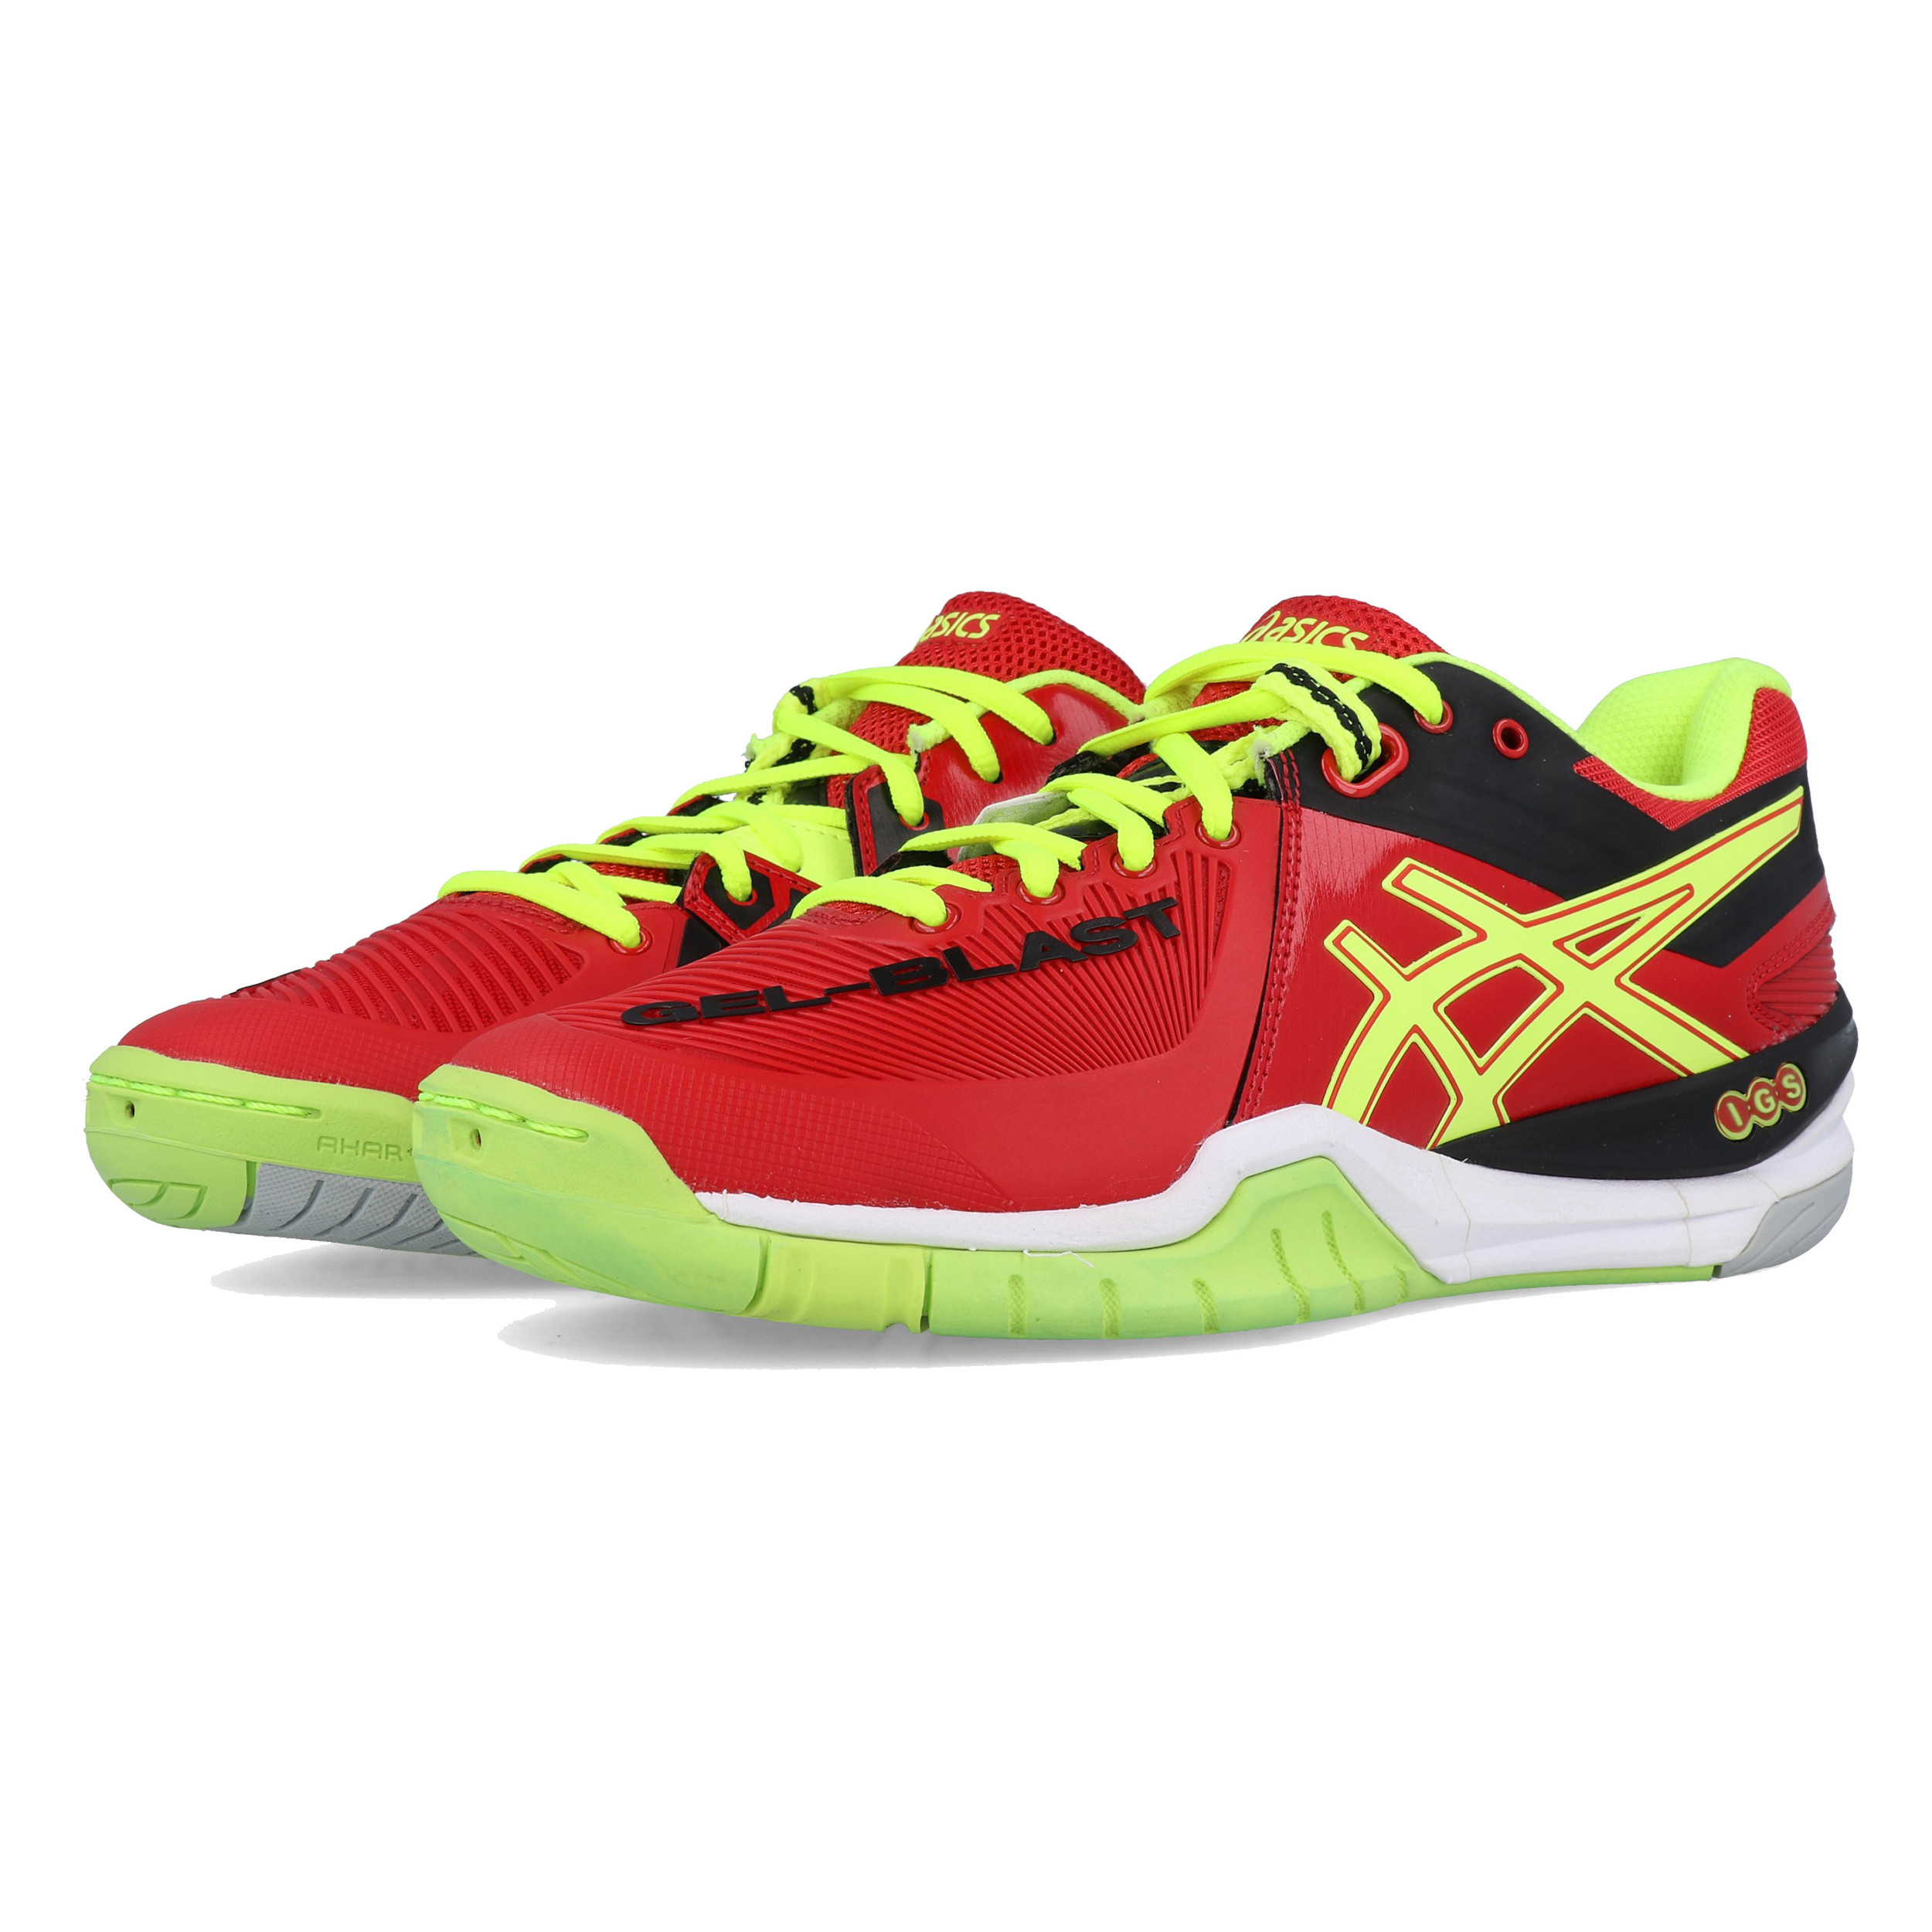 sélection premium 8a268 10329 Details about Asics Mens GEL-BLAST 6 Indoor Court Shoes Red Sports  Badminton Squash